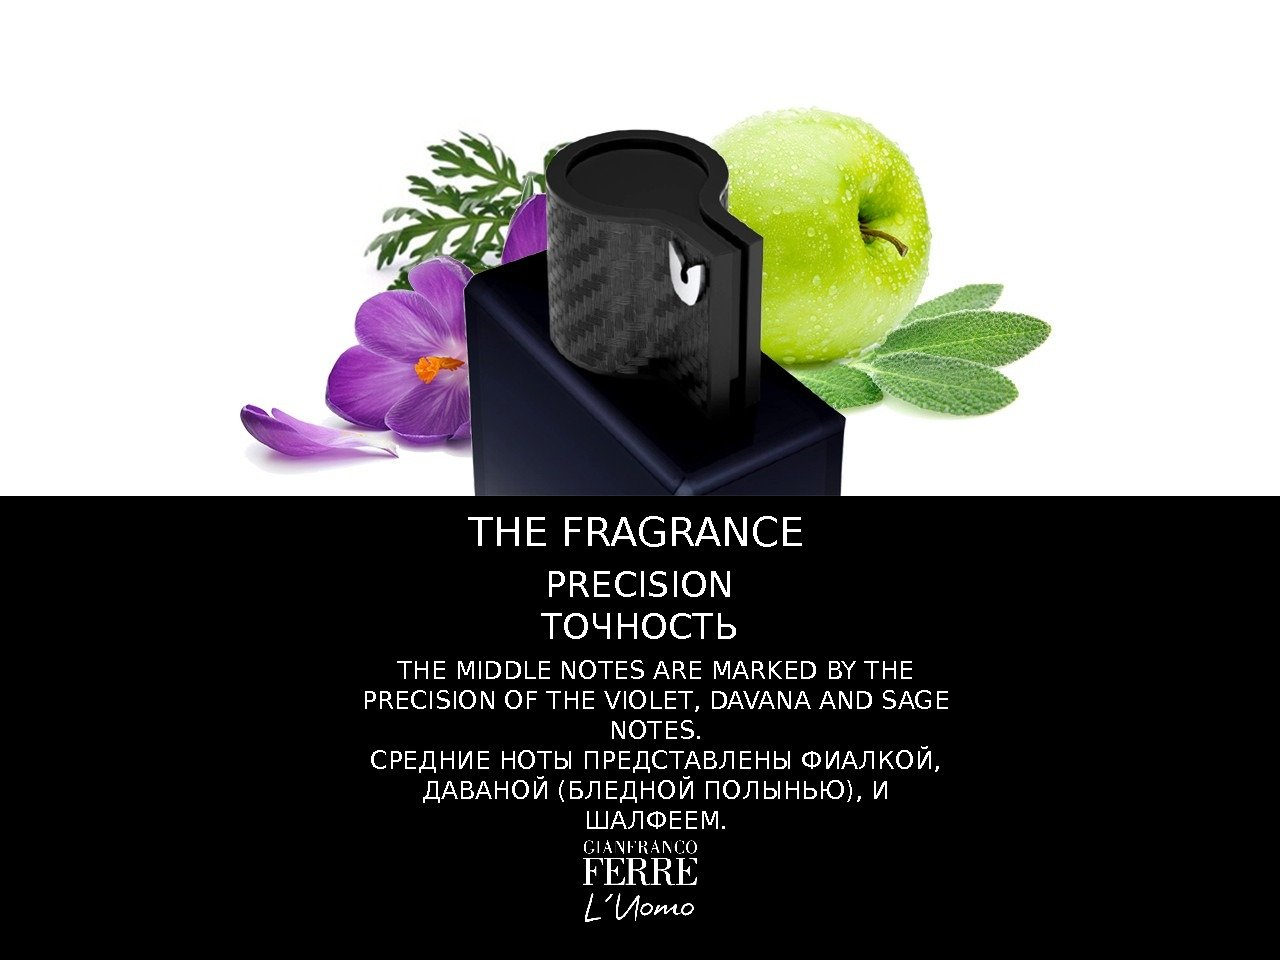 THE FRAGRANCE PRECISION ТОЧНОСТЬ THE MIDDLE NOTES ARE MARKED BY THE PRECISION OF THE